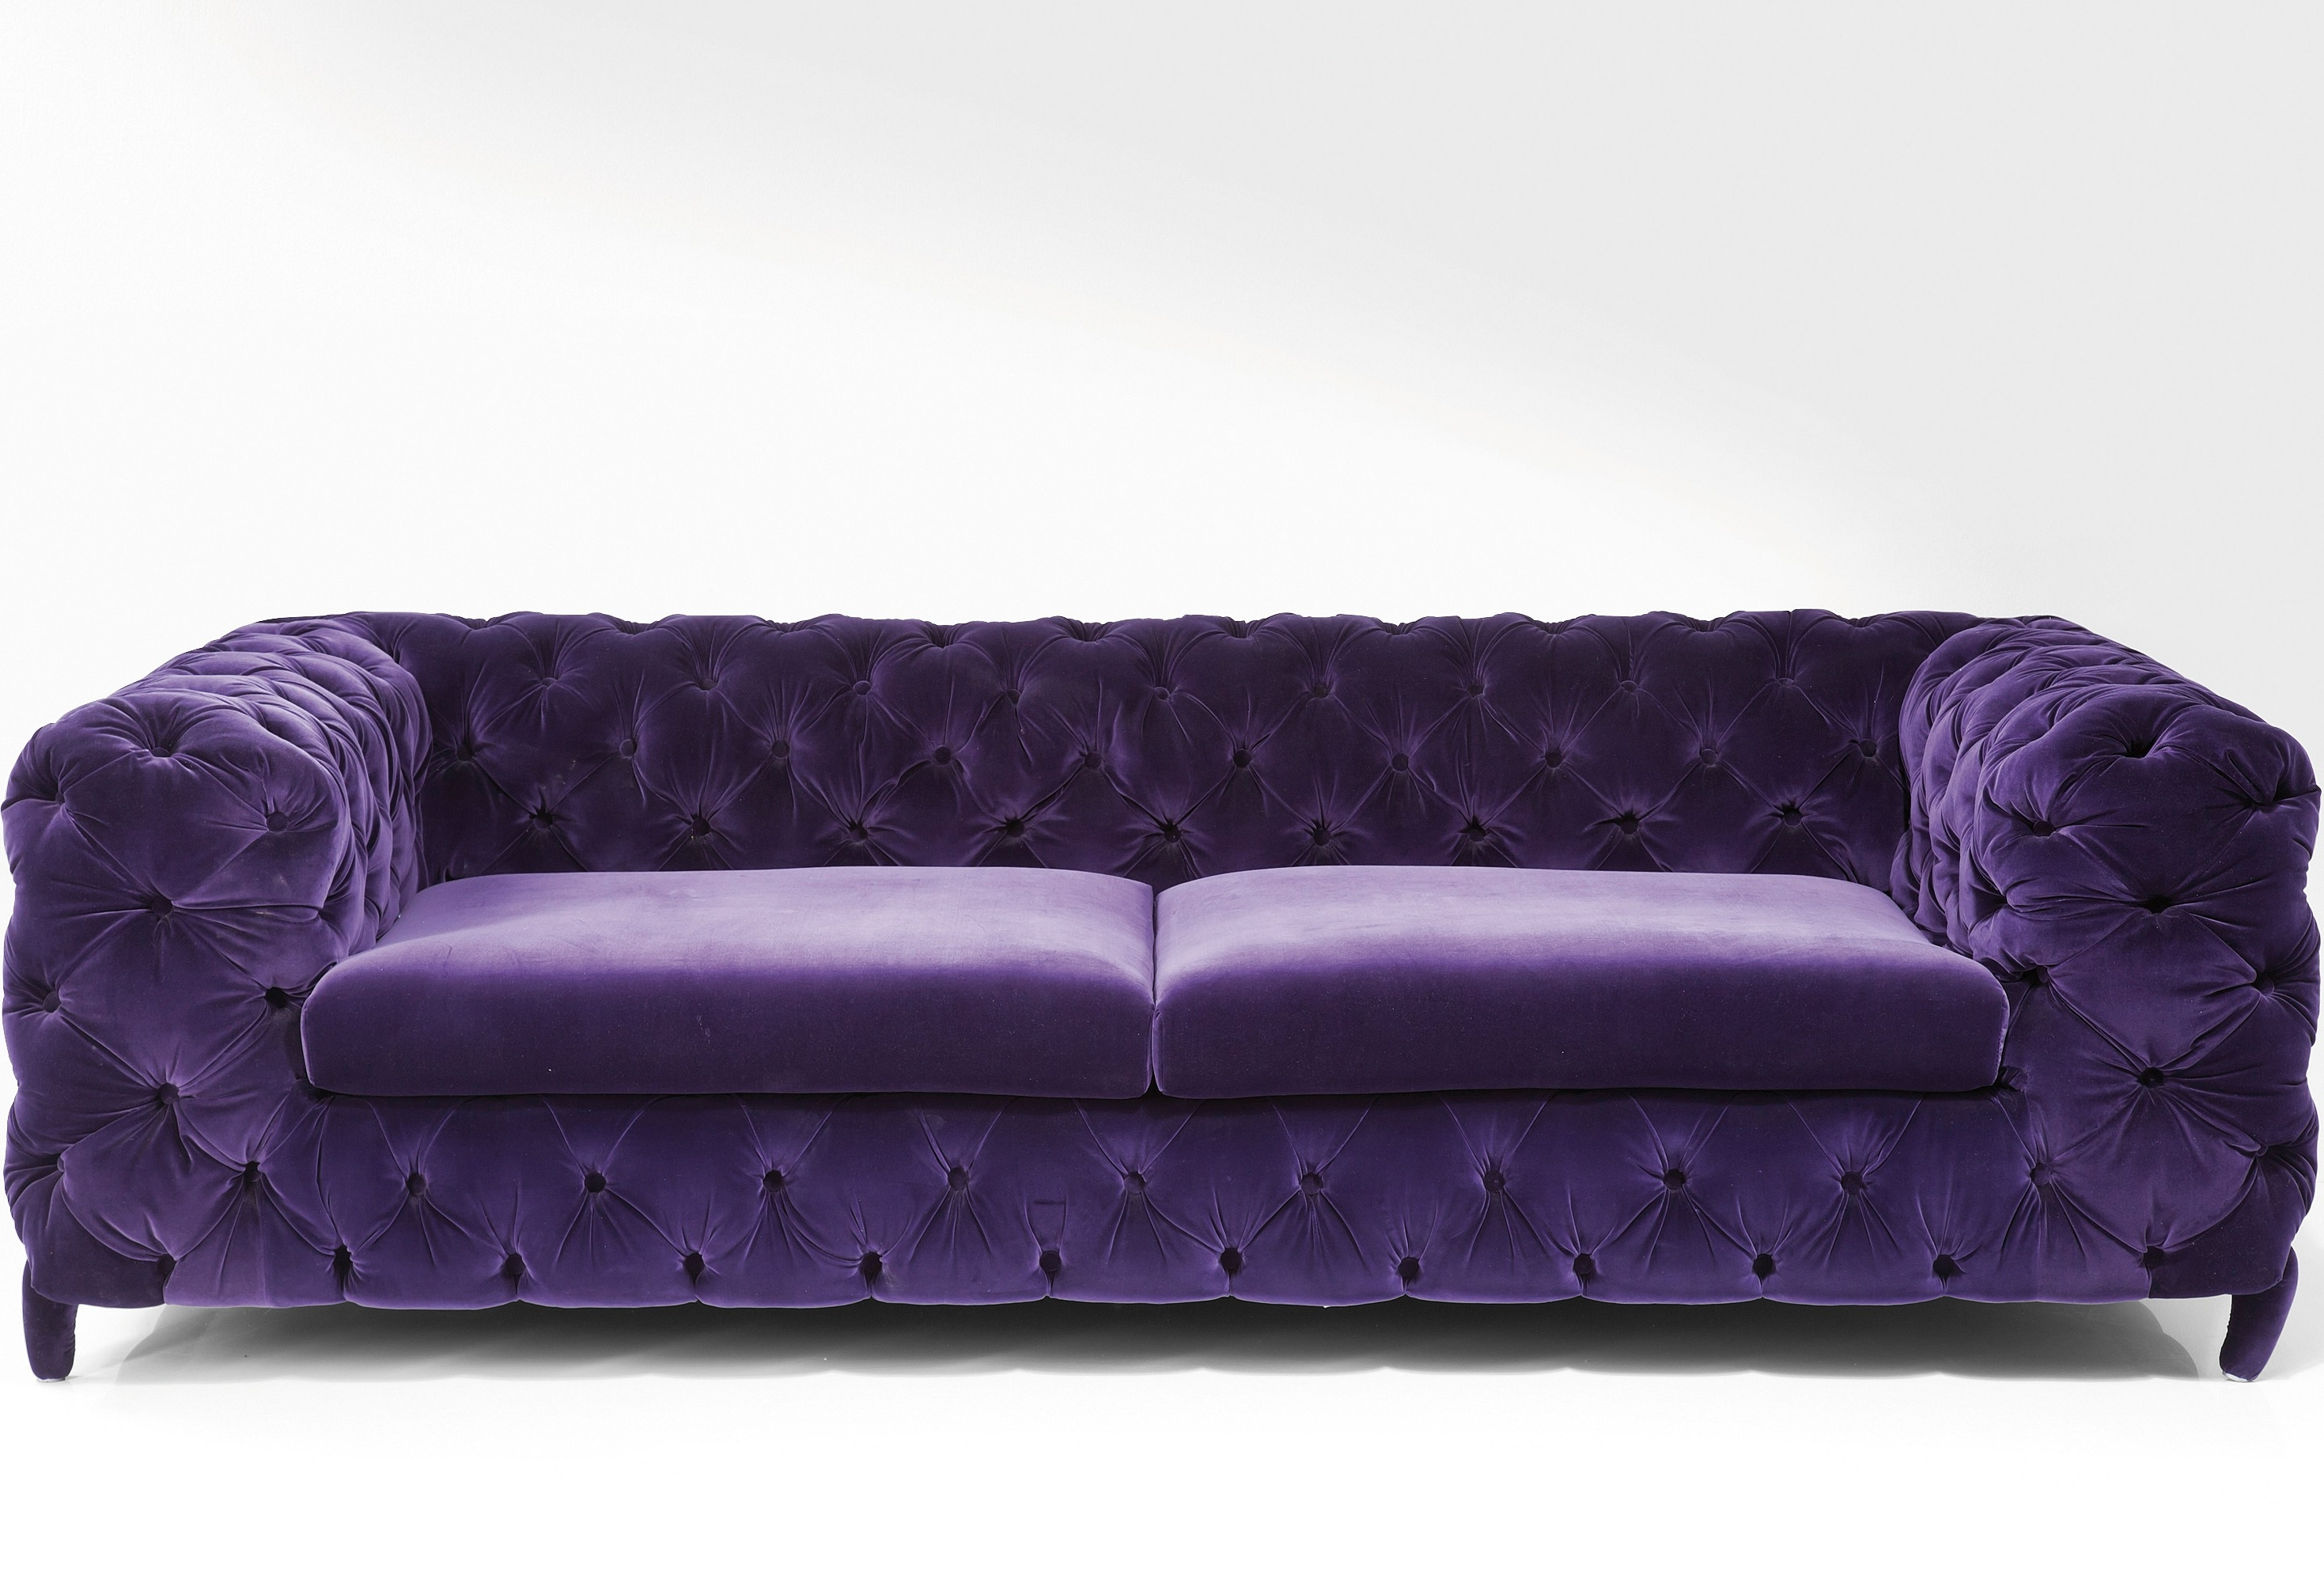 Best And Newest We've Selected 20 Beautiful Velvet Sofas, In A Variety Of Modern Inside Velvet Sofas (View 13 of 20)